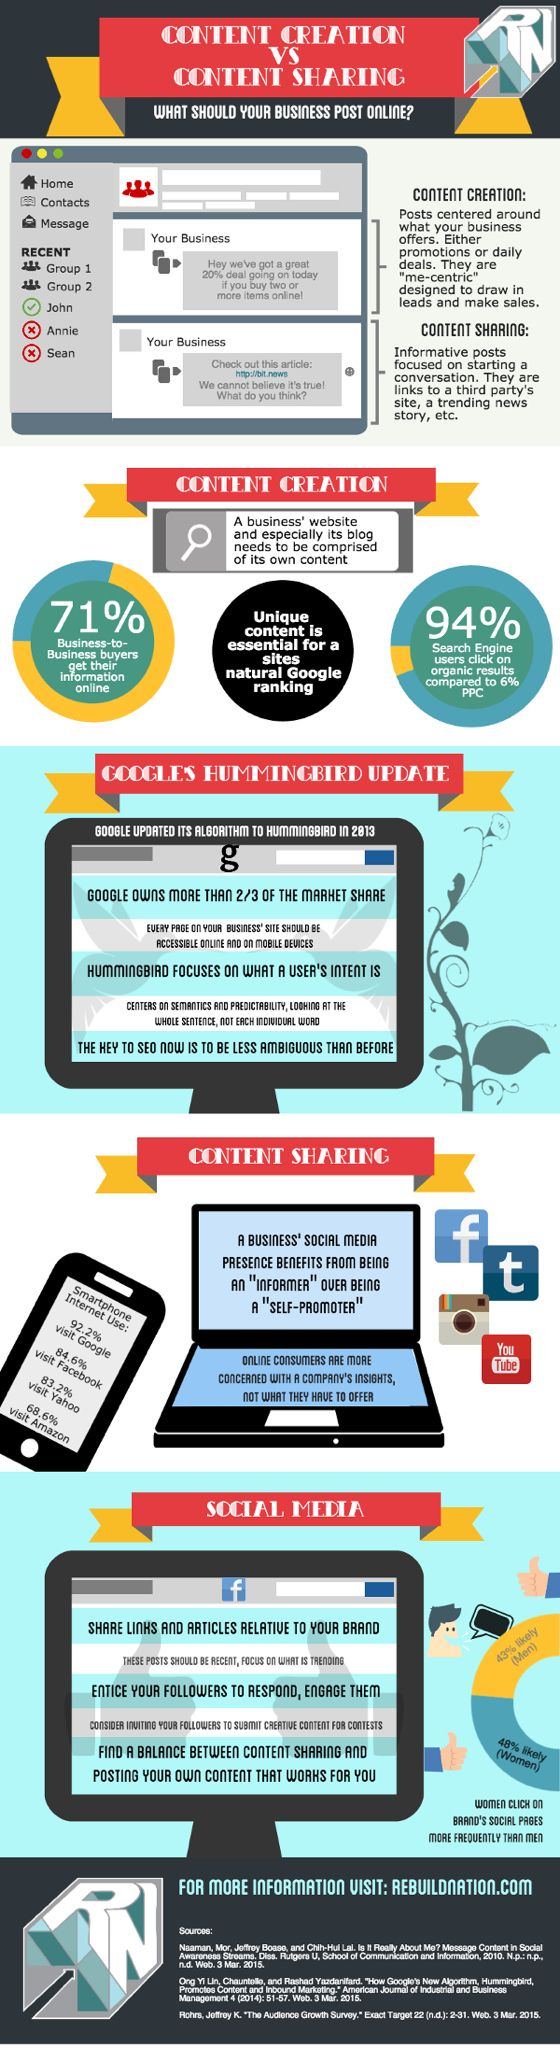 27 best Infographics images on Pinterest | Info graphics, Sleep and Tips